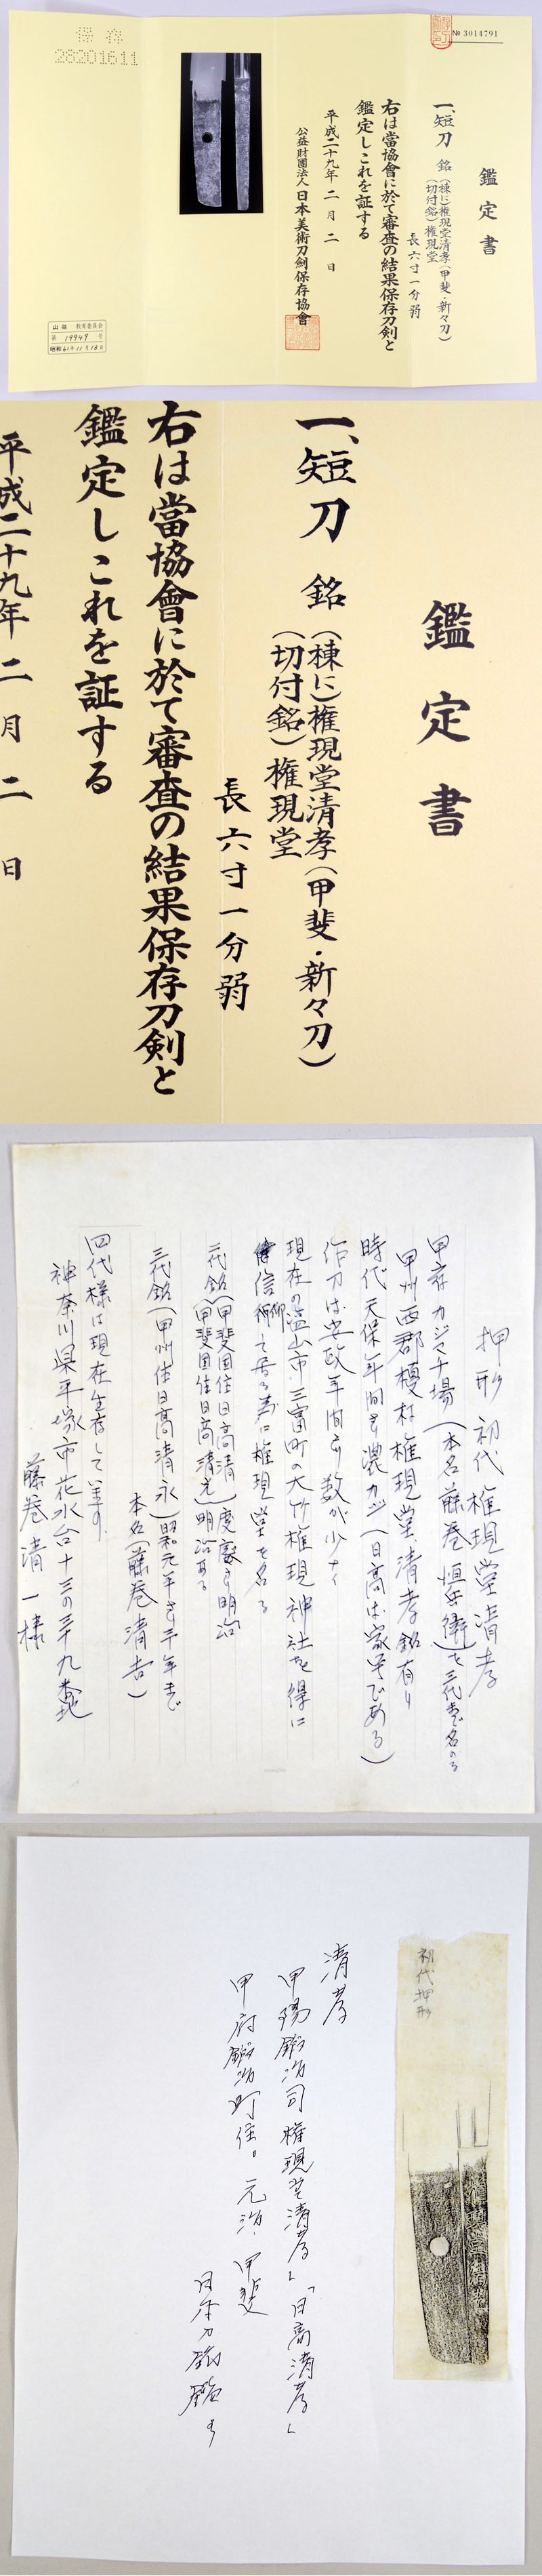 権現堂清孝 Picture of Certificate